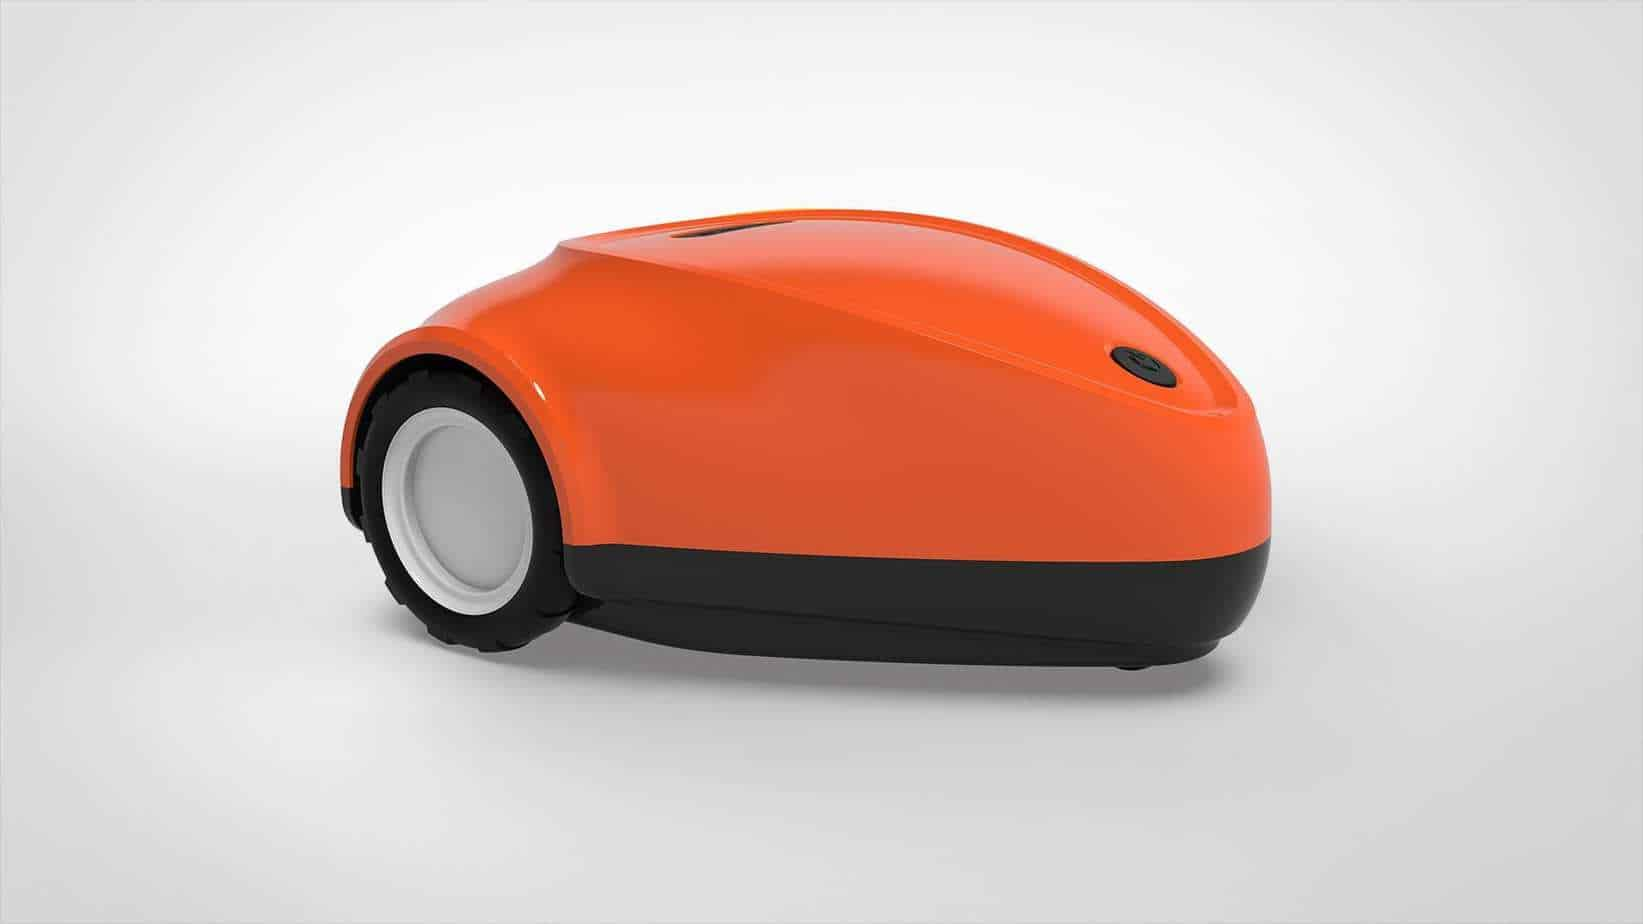 SmartMow gps robot lawn mower in orange